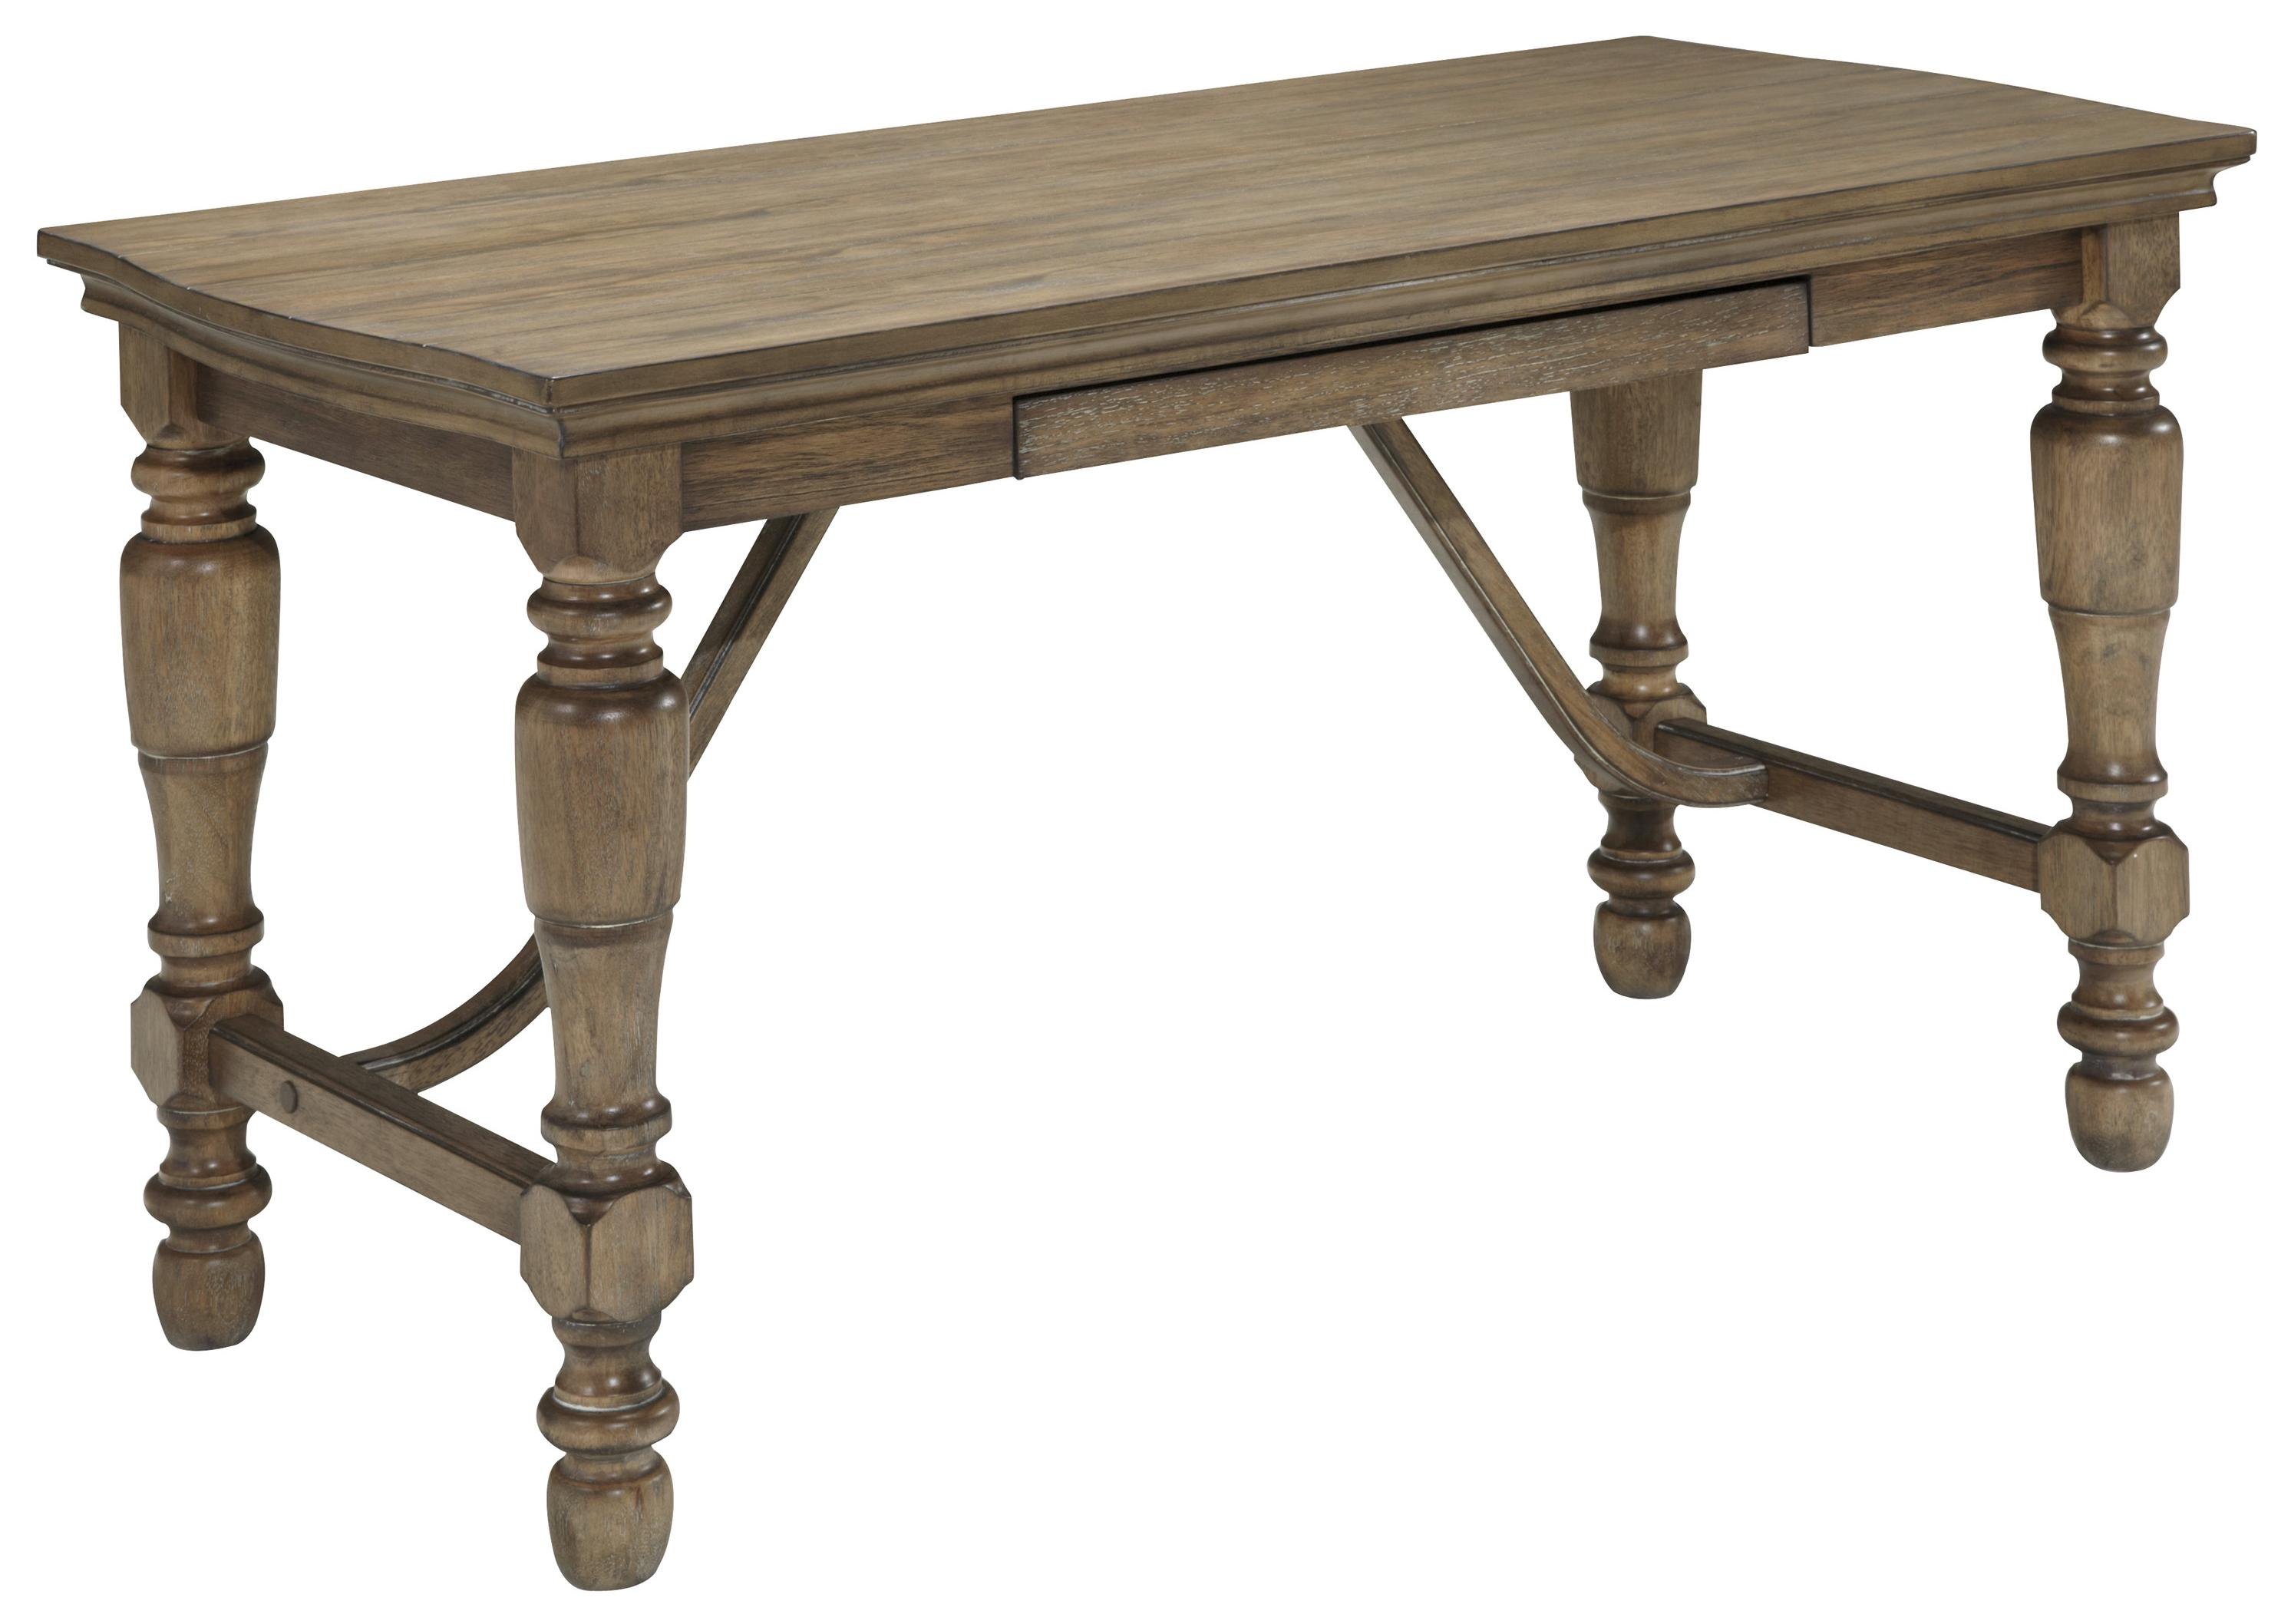 Signature Design by Ashley Tanshire Home Office Desk - Item Number: H688-27